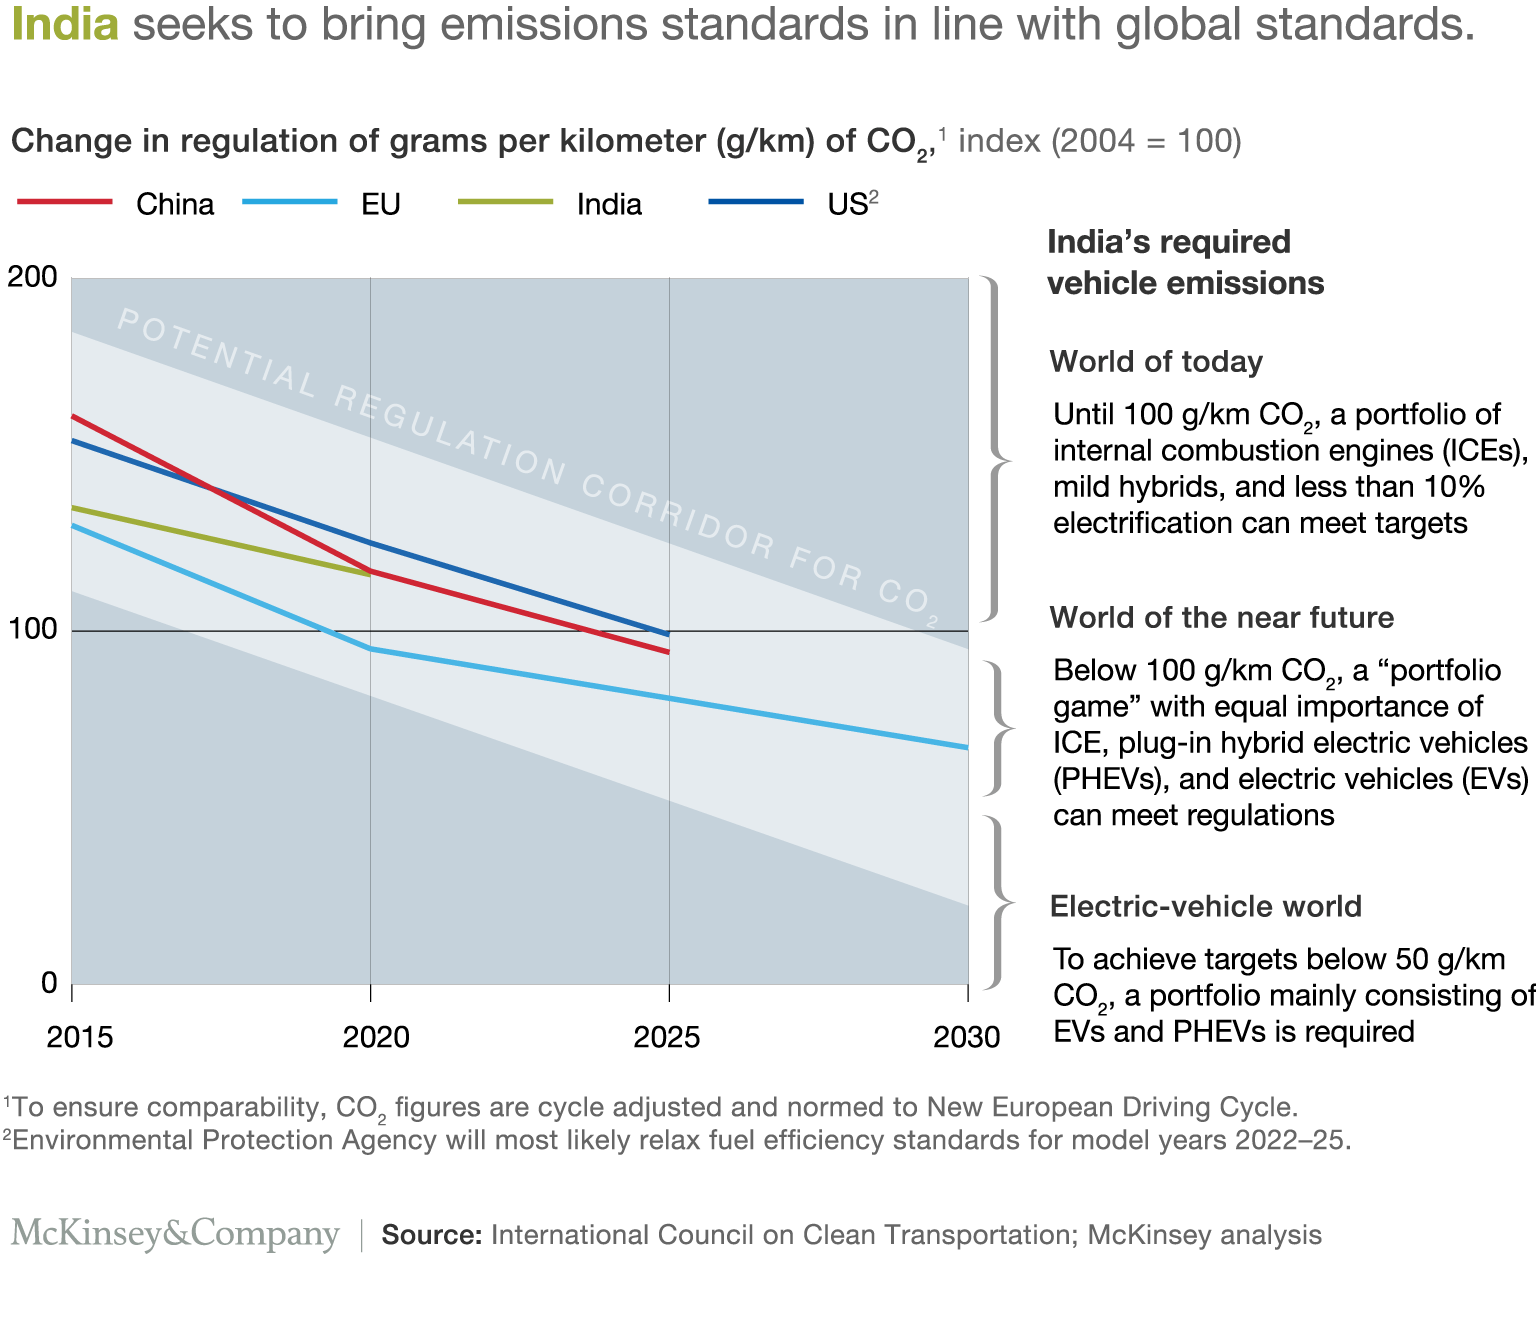 India seeks to bring emissions standards in line with global standards.